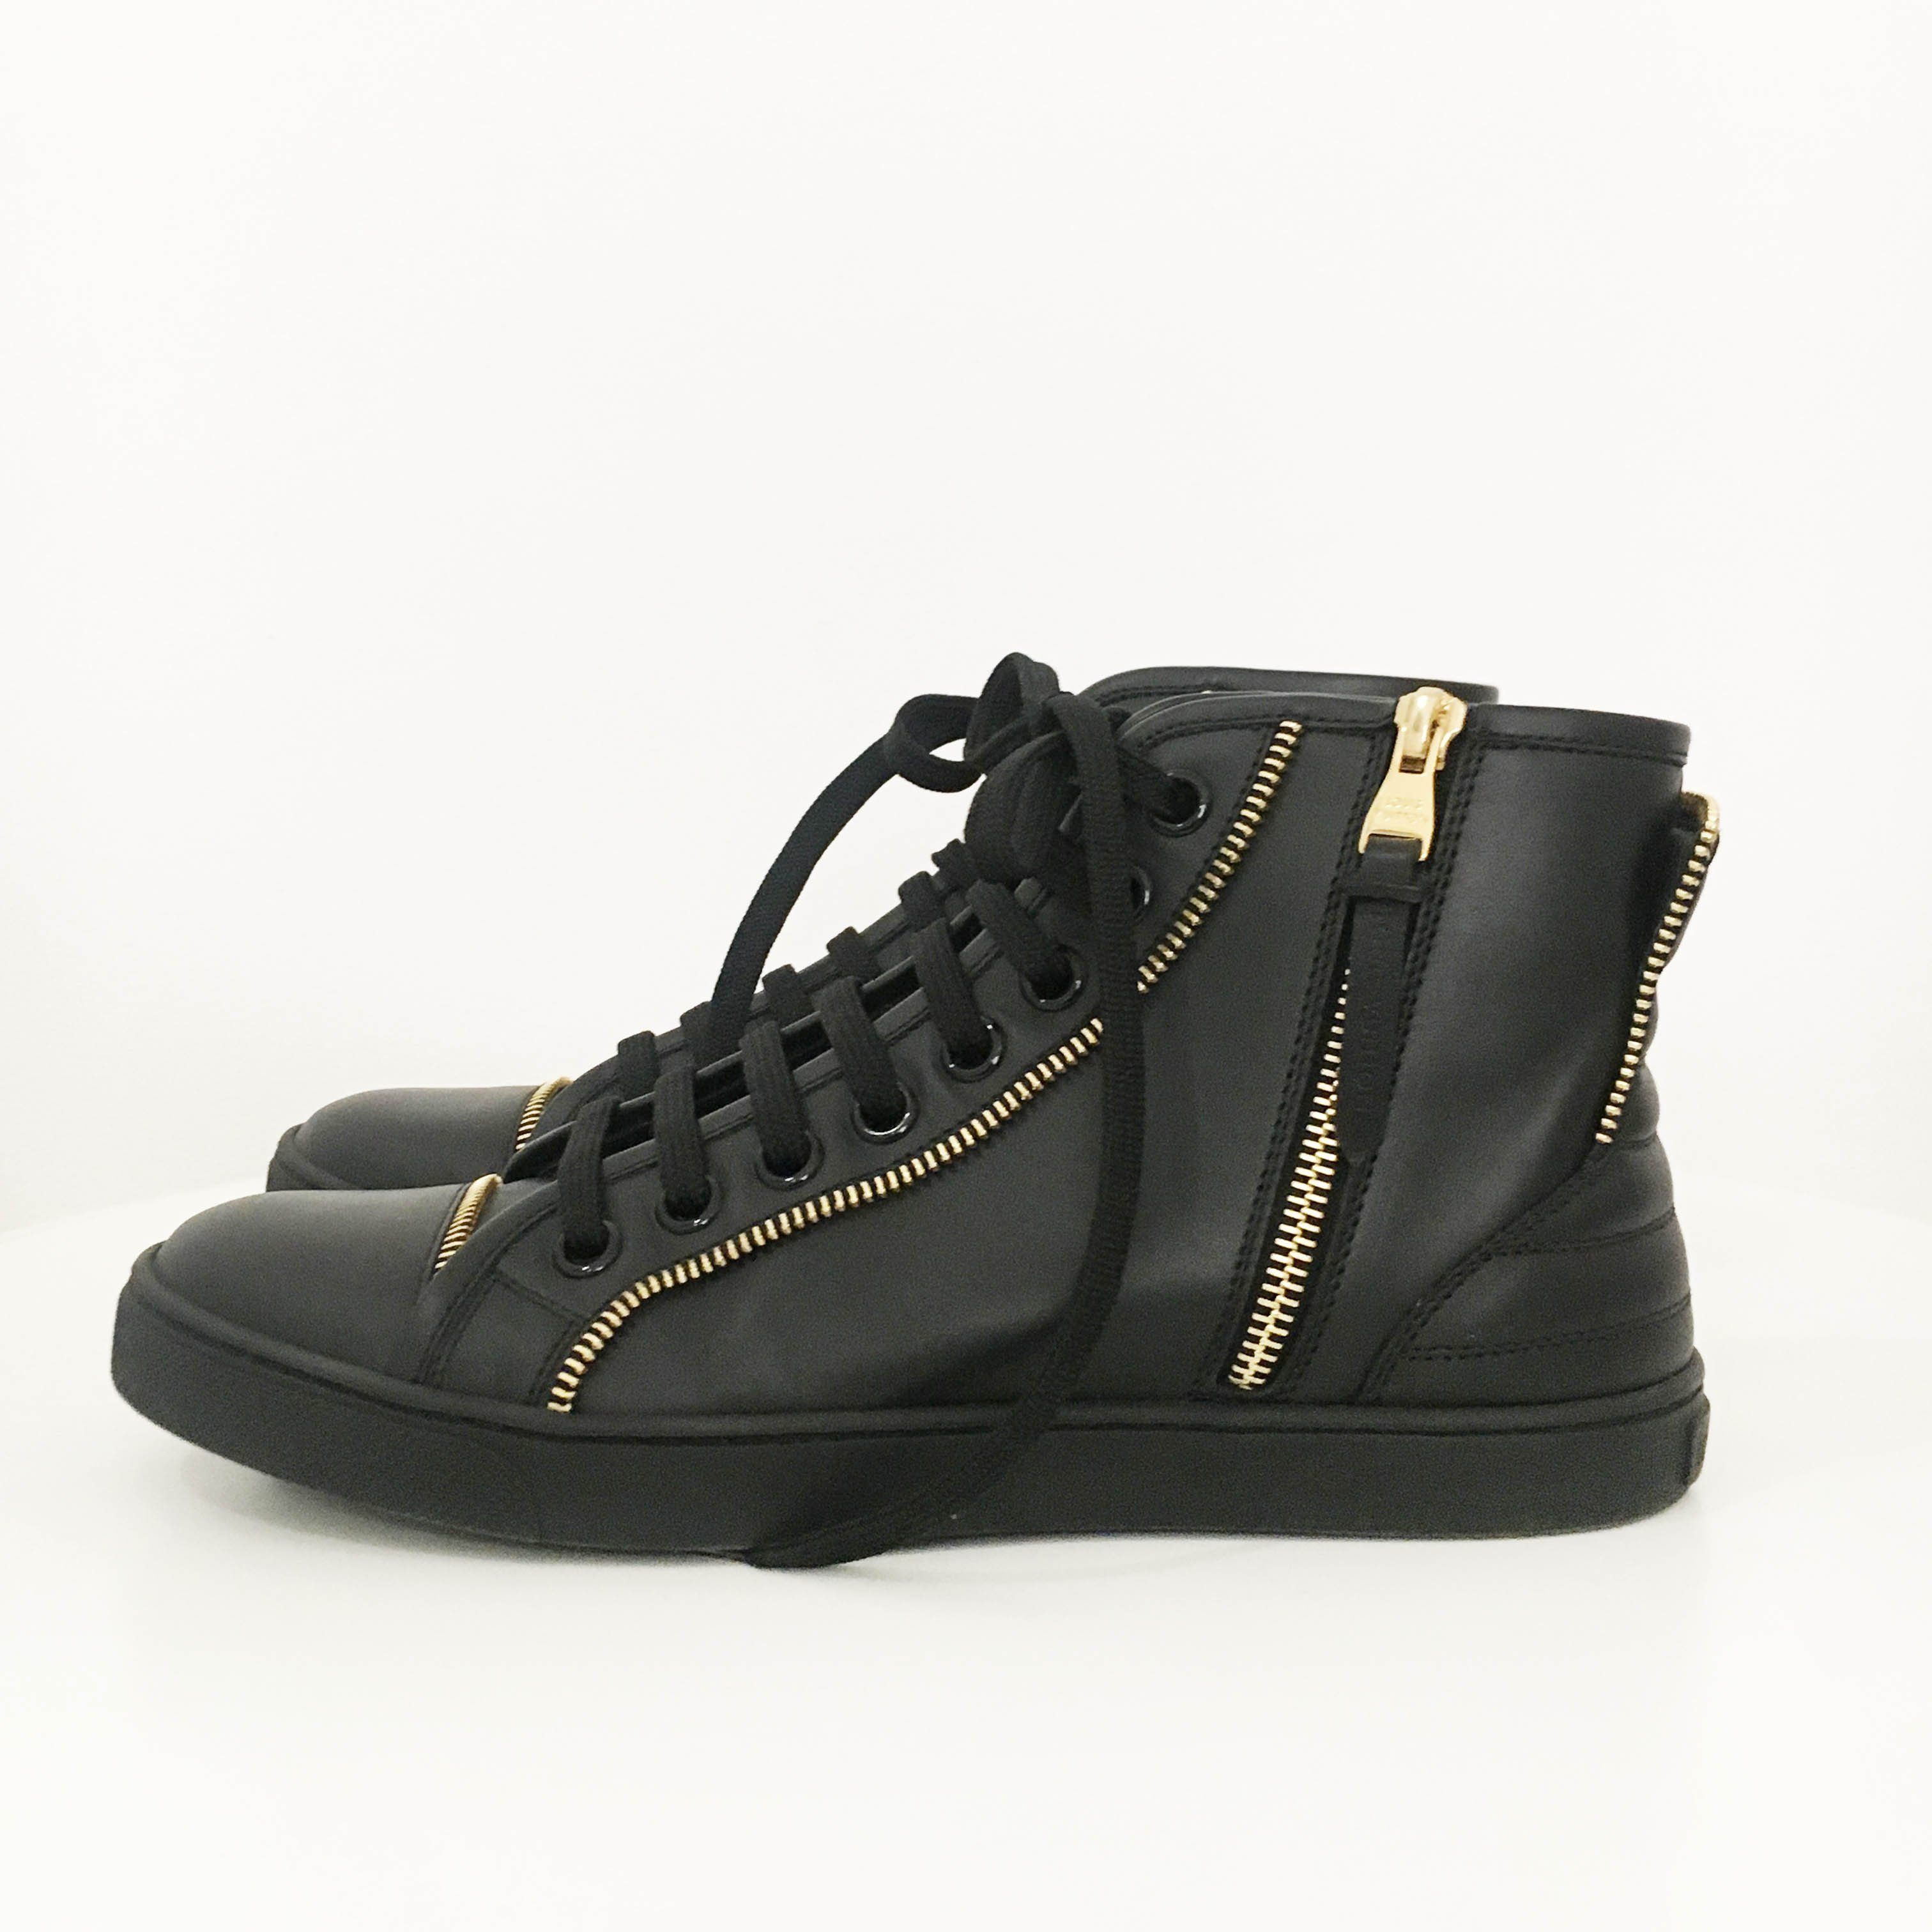 Louis Vuitton Black High Top Zipper Sneakers